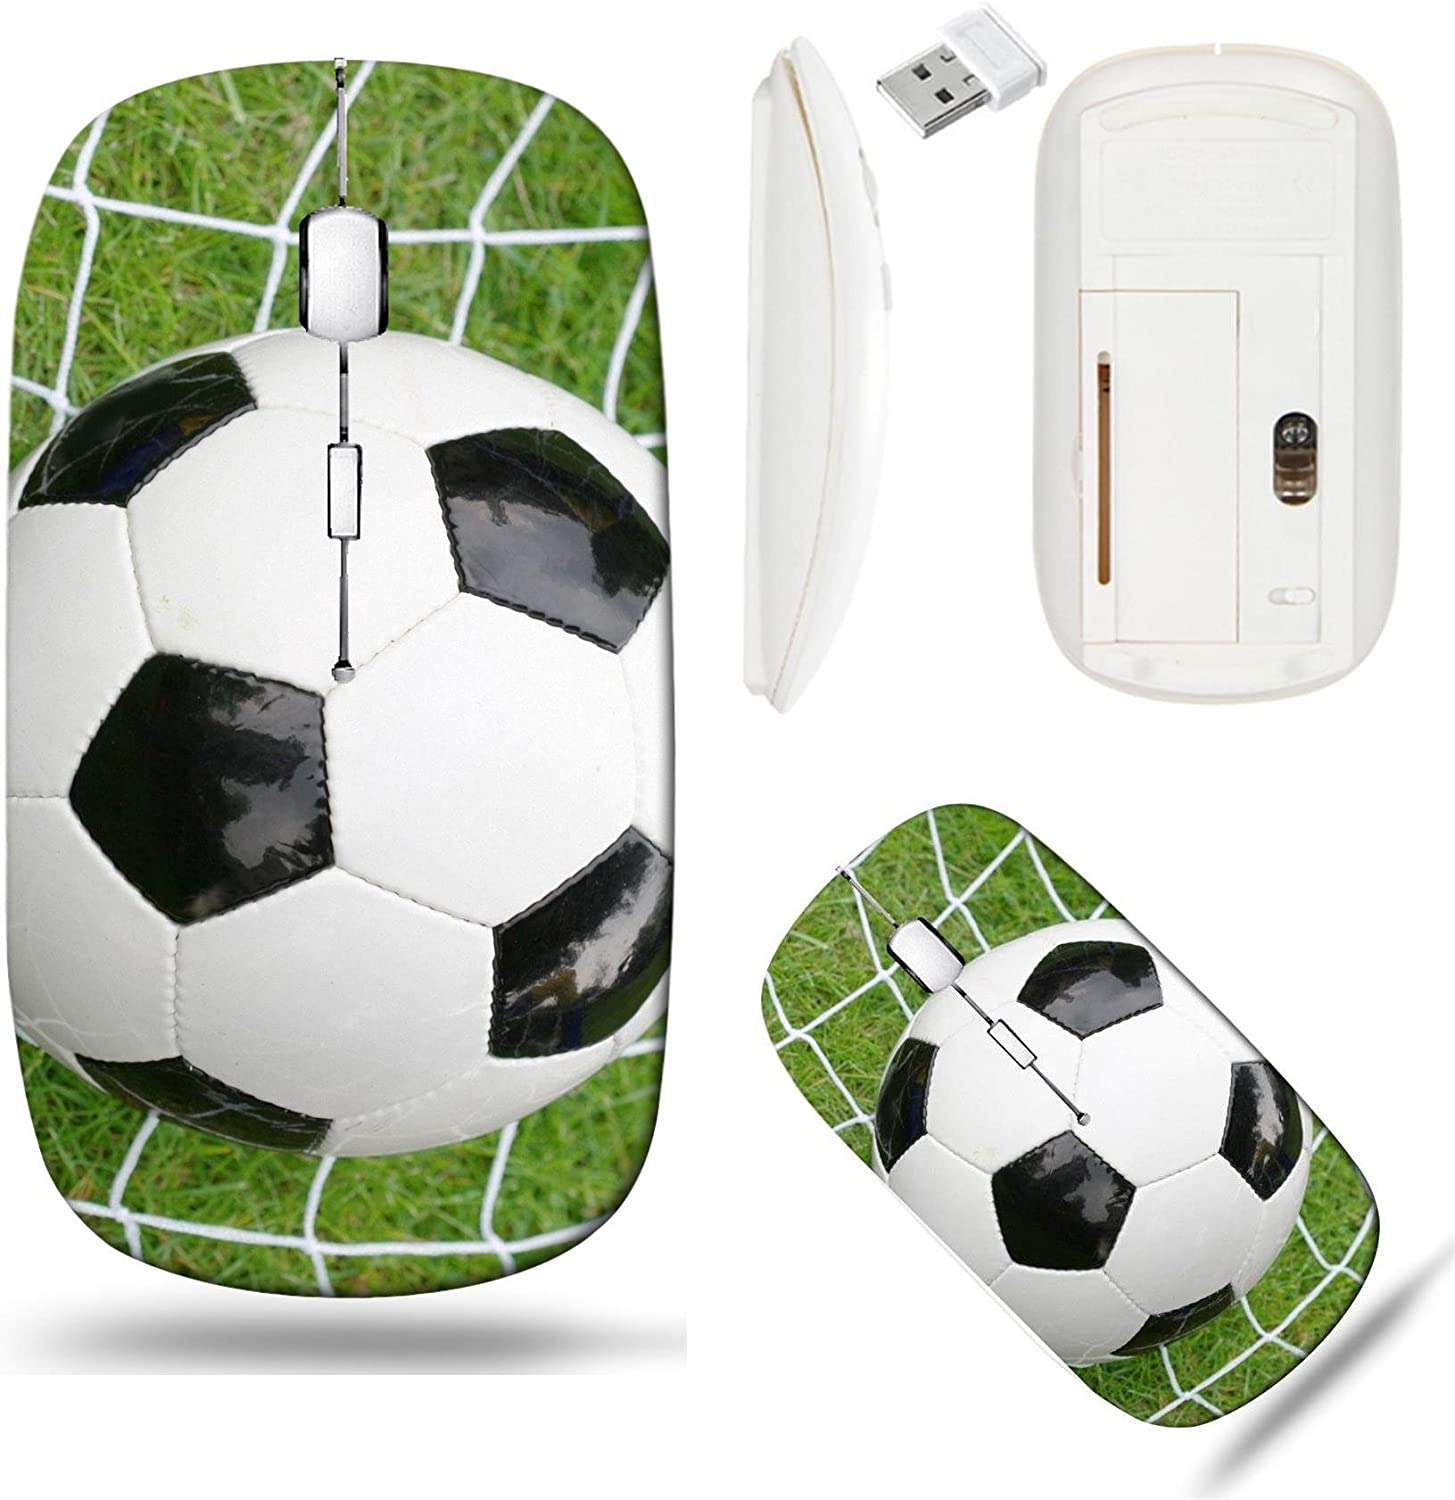 Liili Wireless Mouse White Base Travel 2.4G Wireless Mice with USB Receiver, Click with 1000 DPI for Notebook, pc, Laptop, Computer, mac Book Soccer Ball Photo 399771